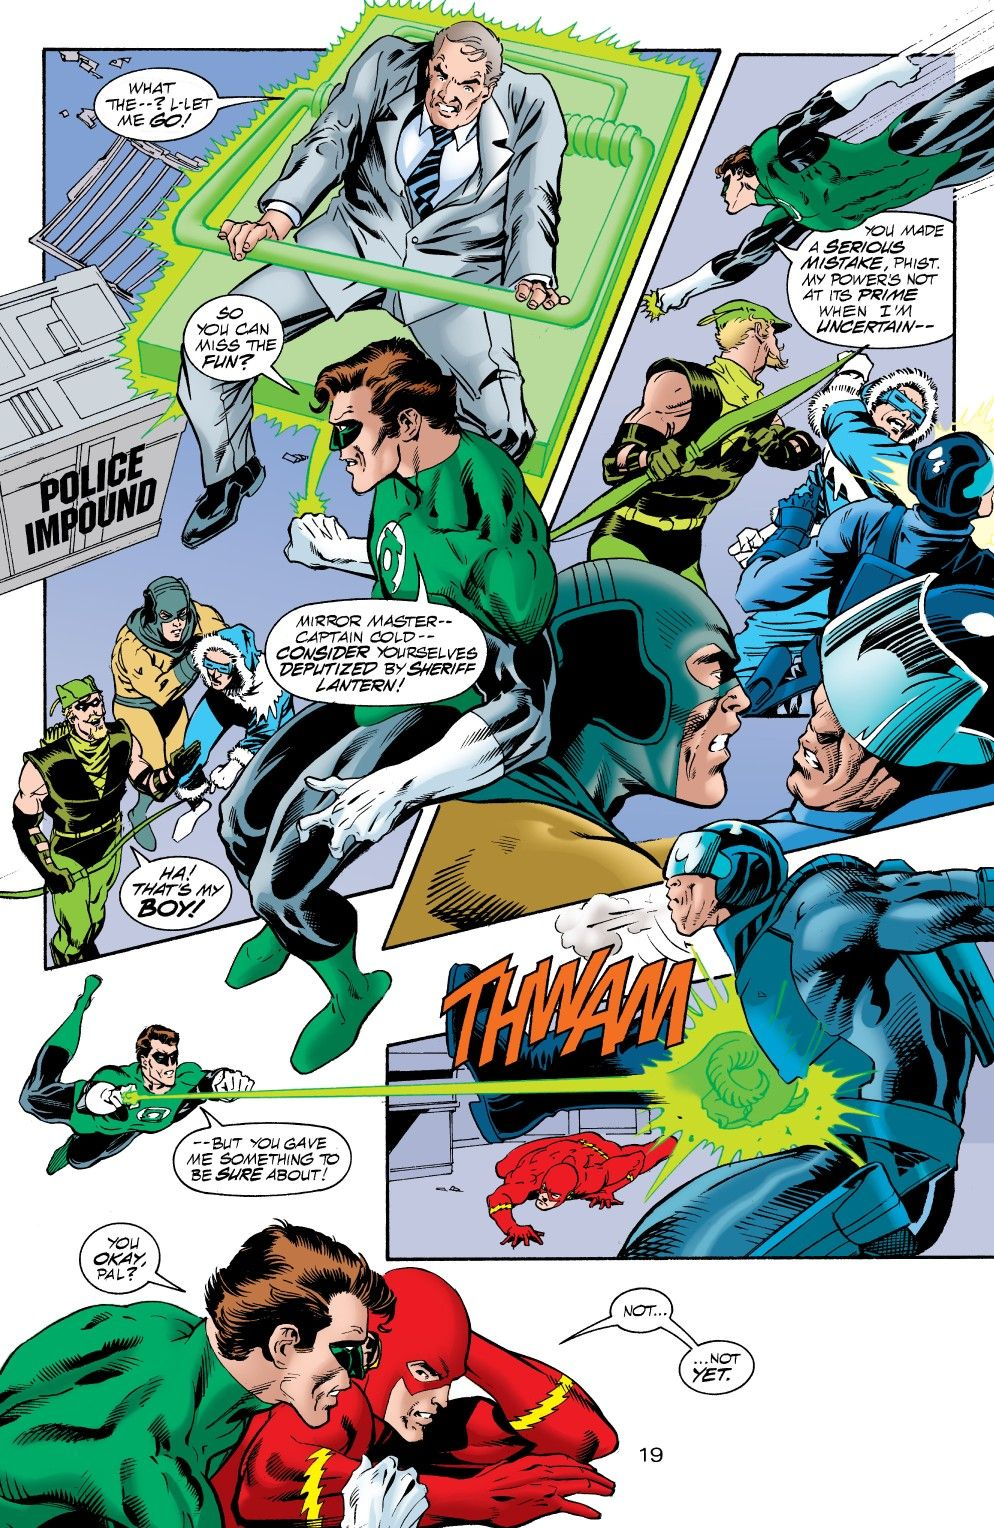 Pin By Bramley Willis On Green Arrow And Friends Comics Dc